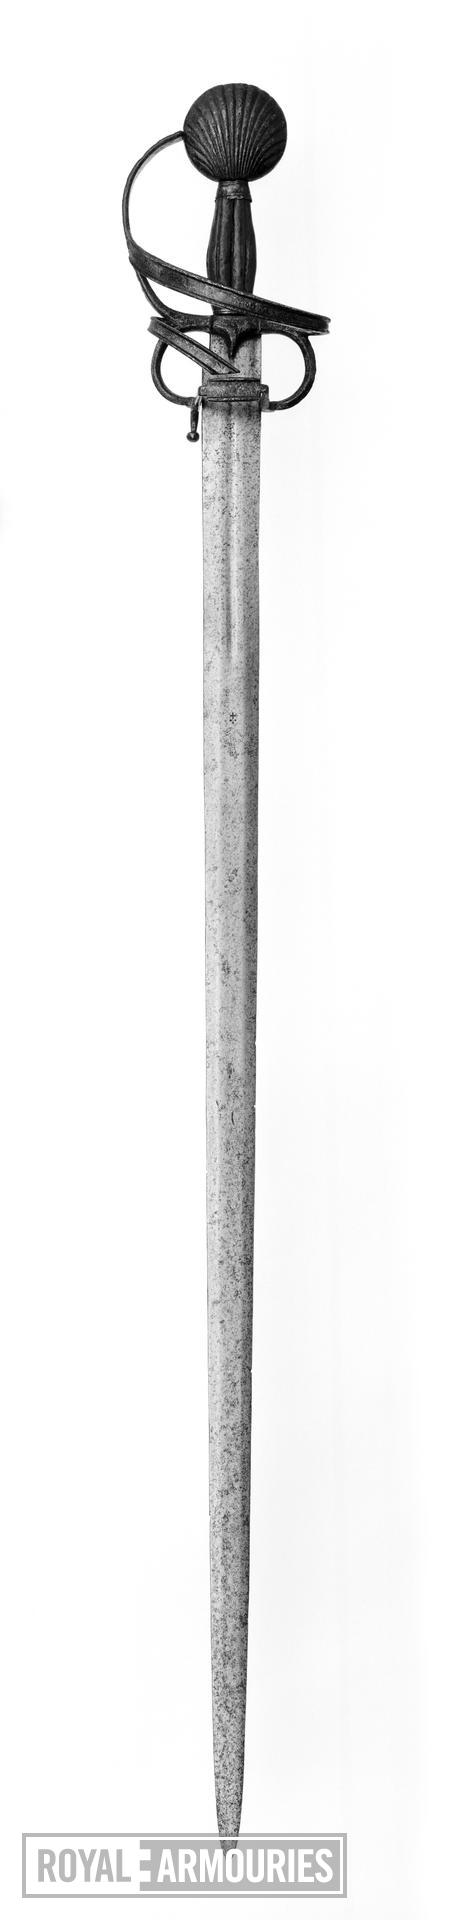 Sword Sword with early form of rapier hilt